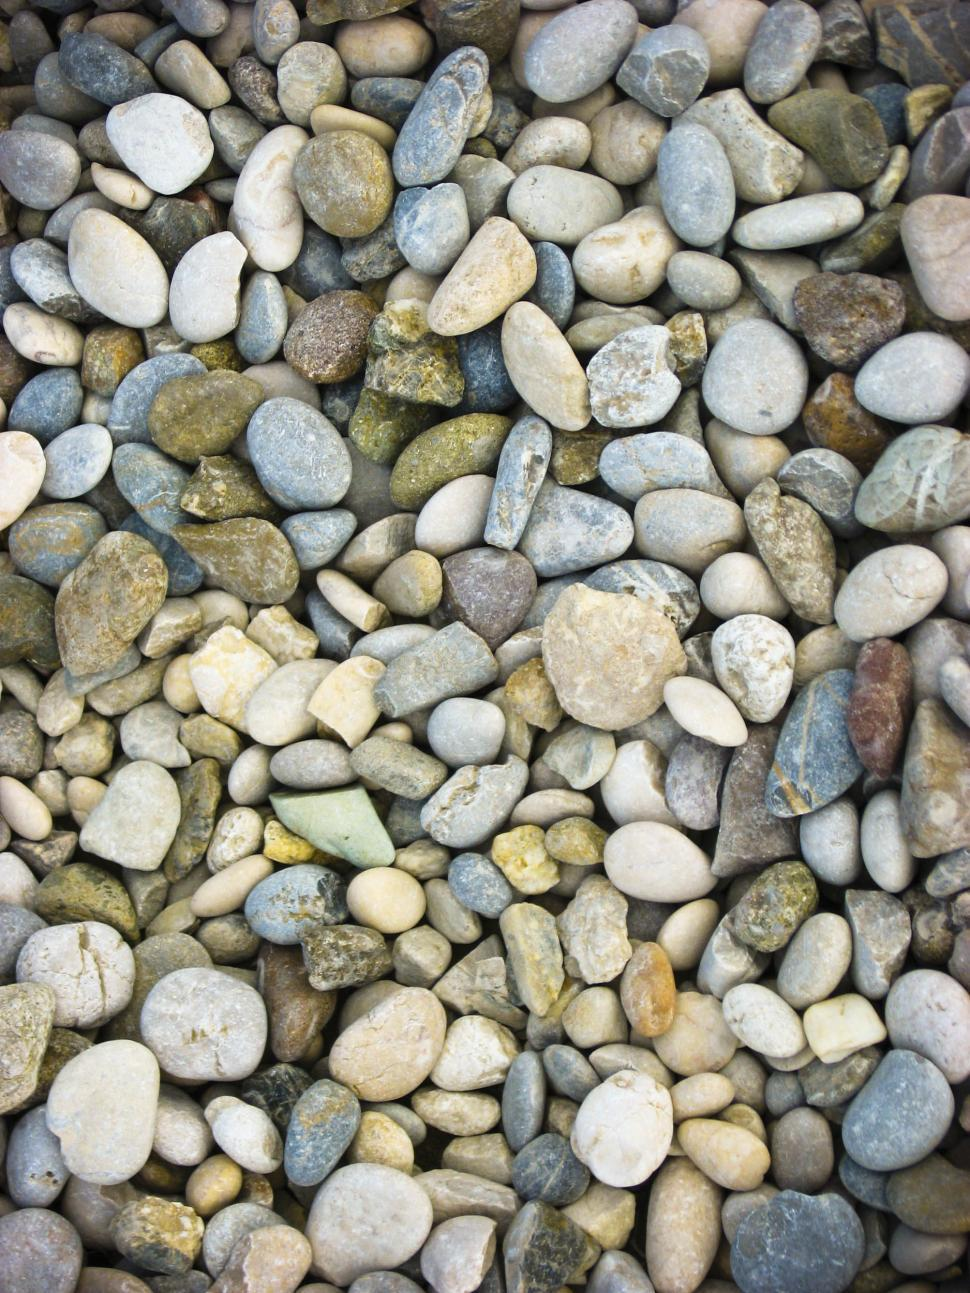 Download Free Stock Photo of pebble background